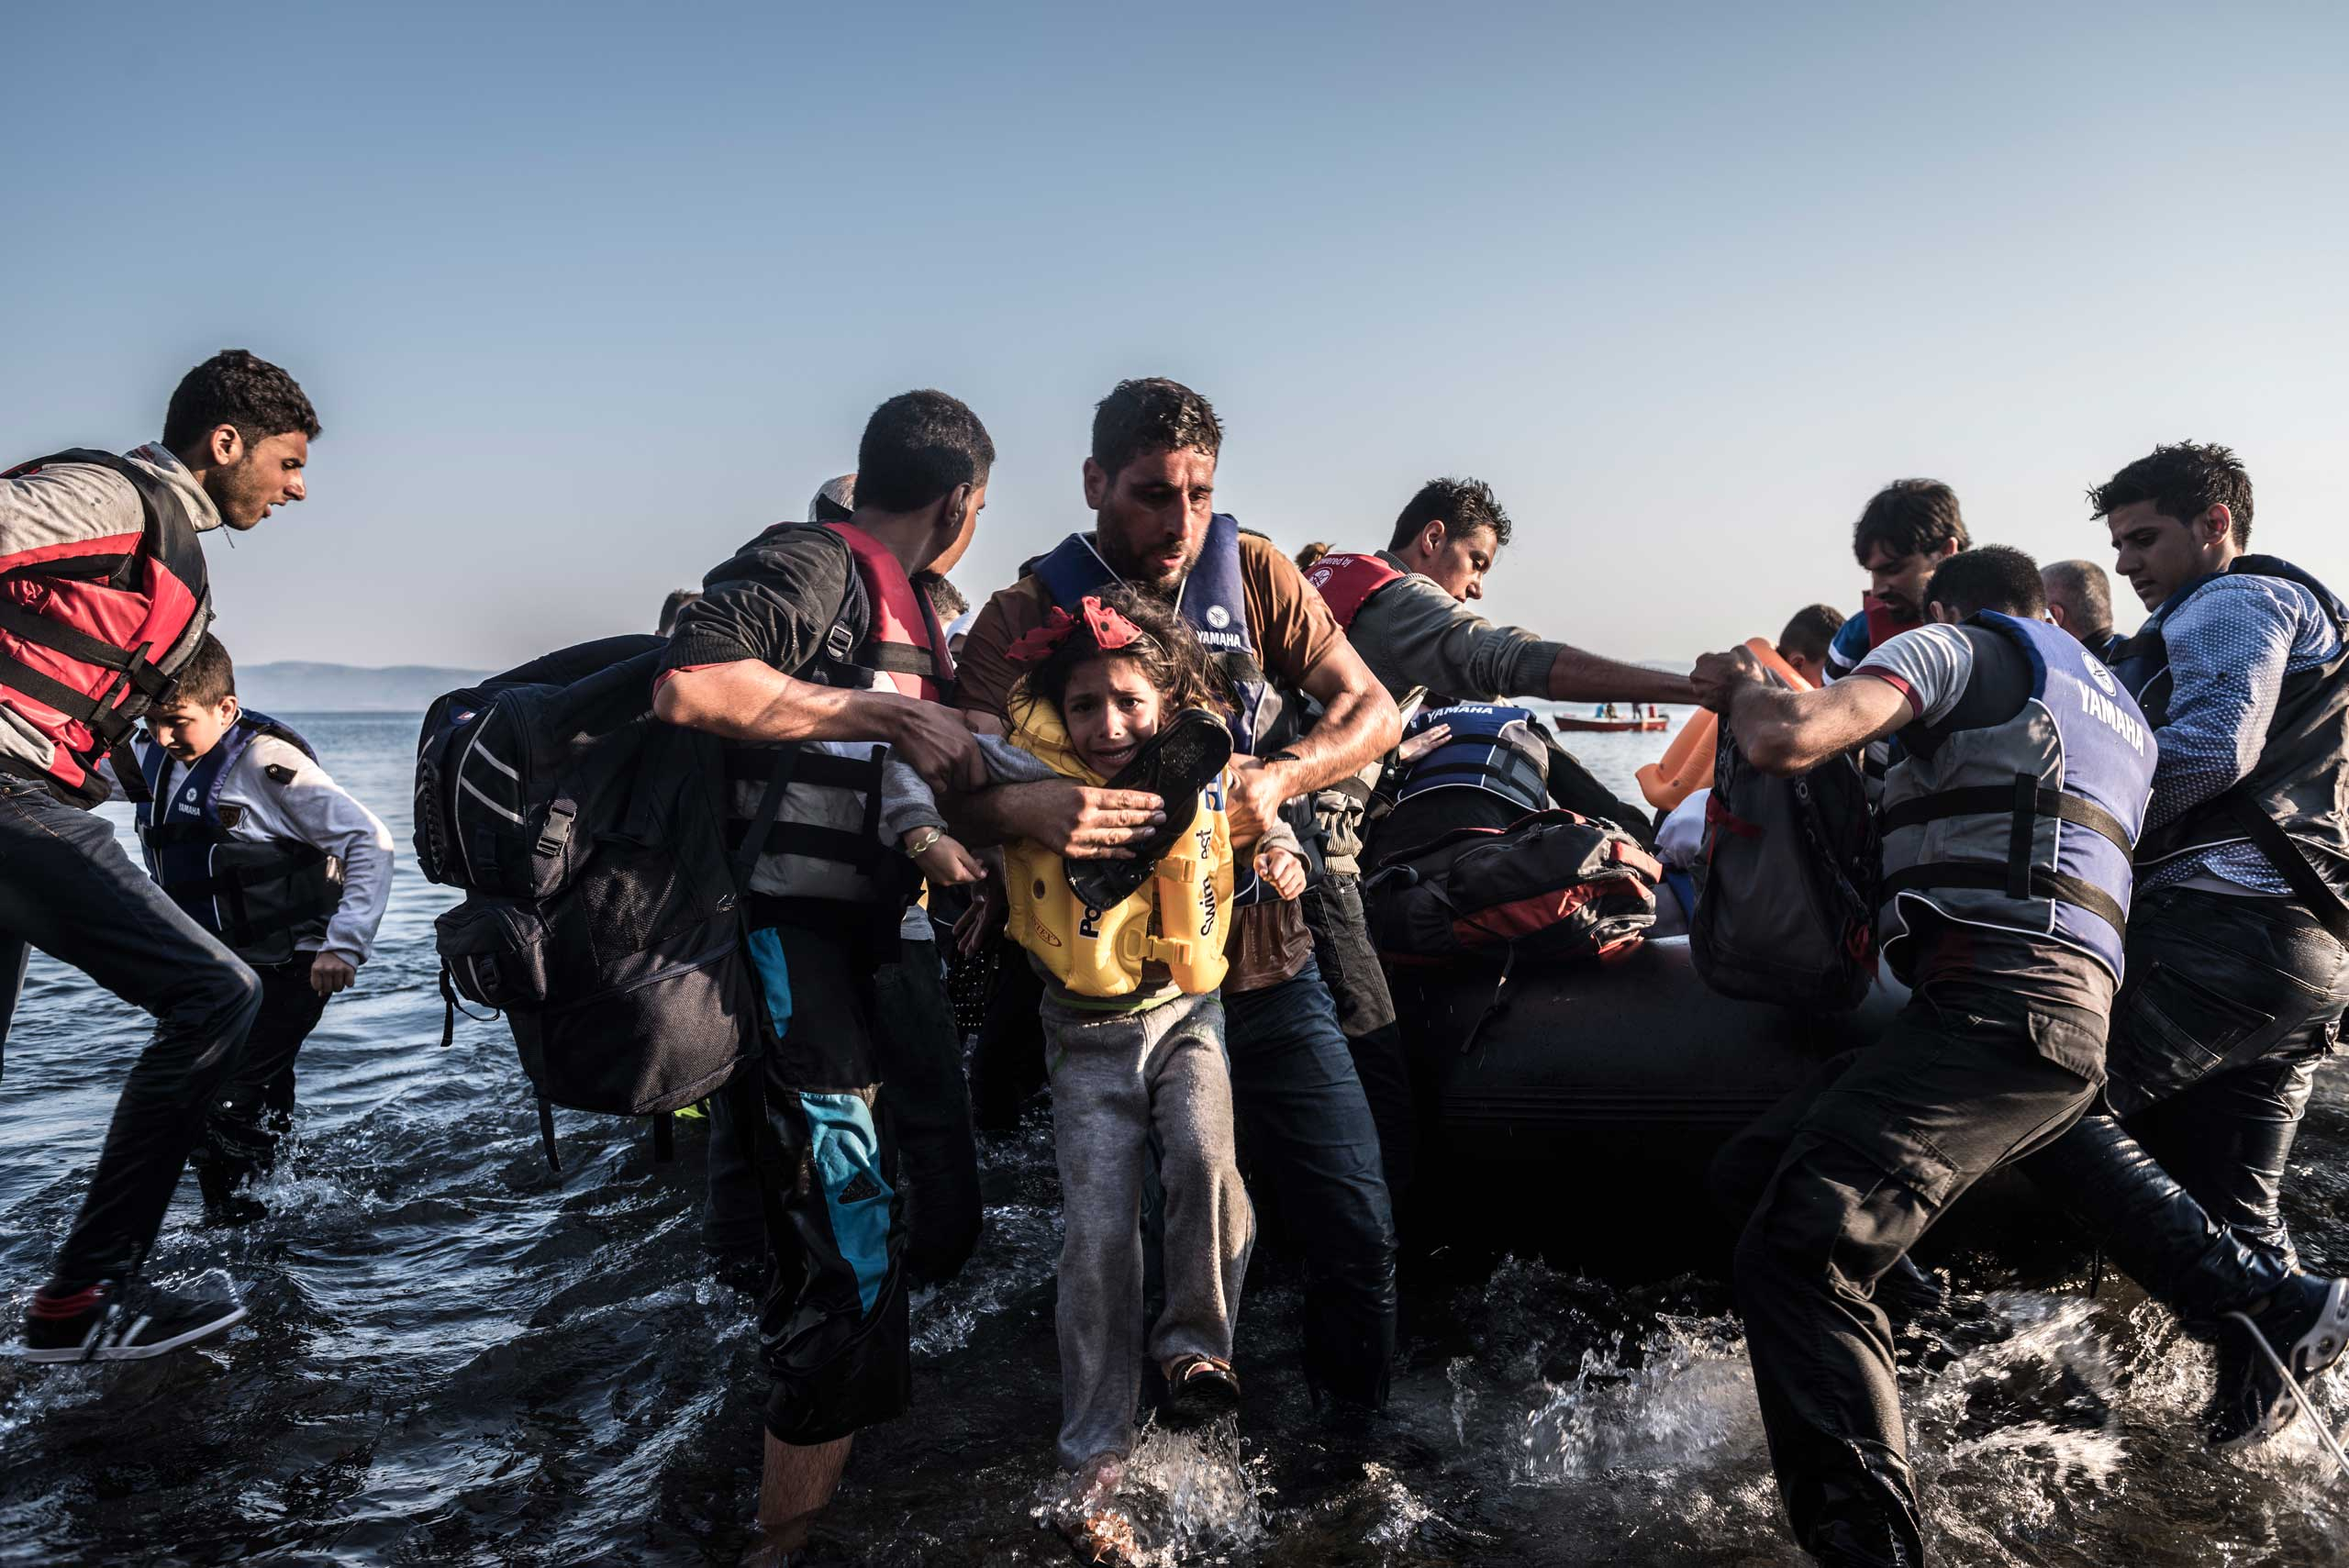 The New York Times: On Island of Lesbos, a Microcosm of Greece's Other Crisis: MigrantsPeople land in Lesbos, Greece, on July, 27, 2015.